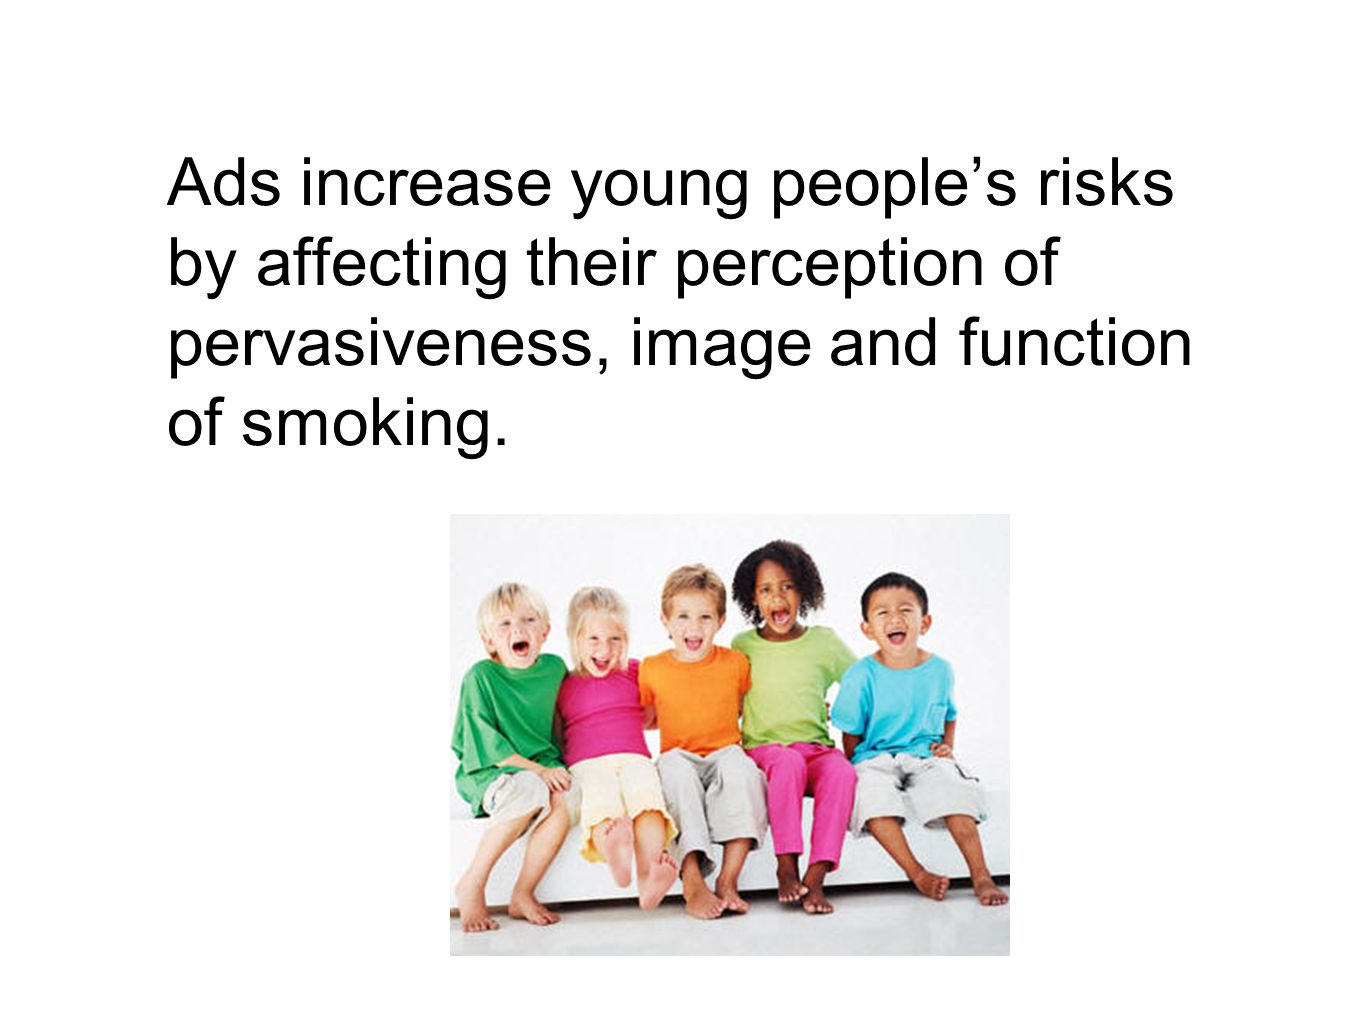 The effects of tobacco advertising on young people